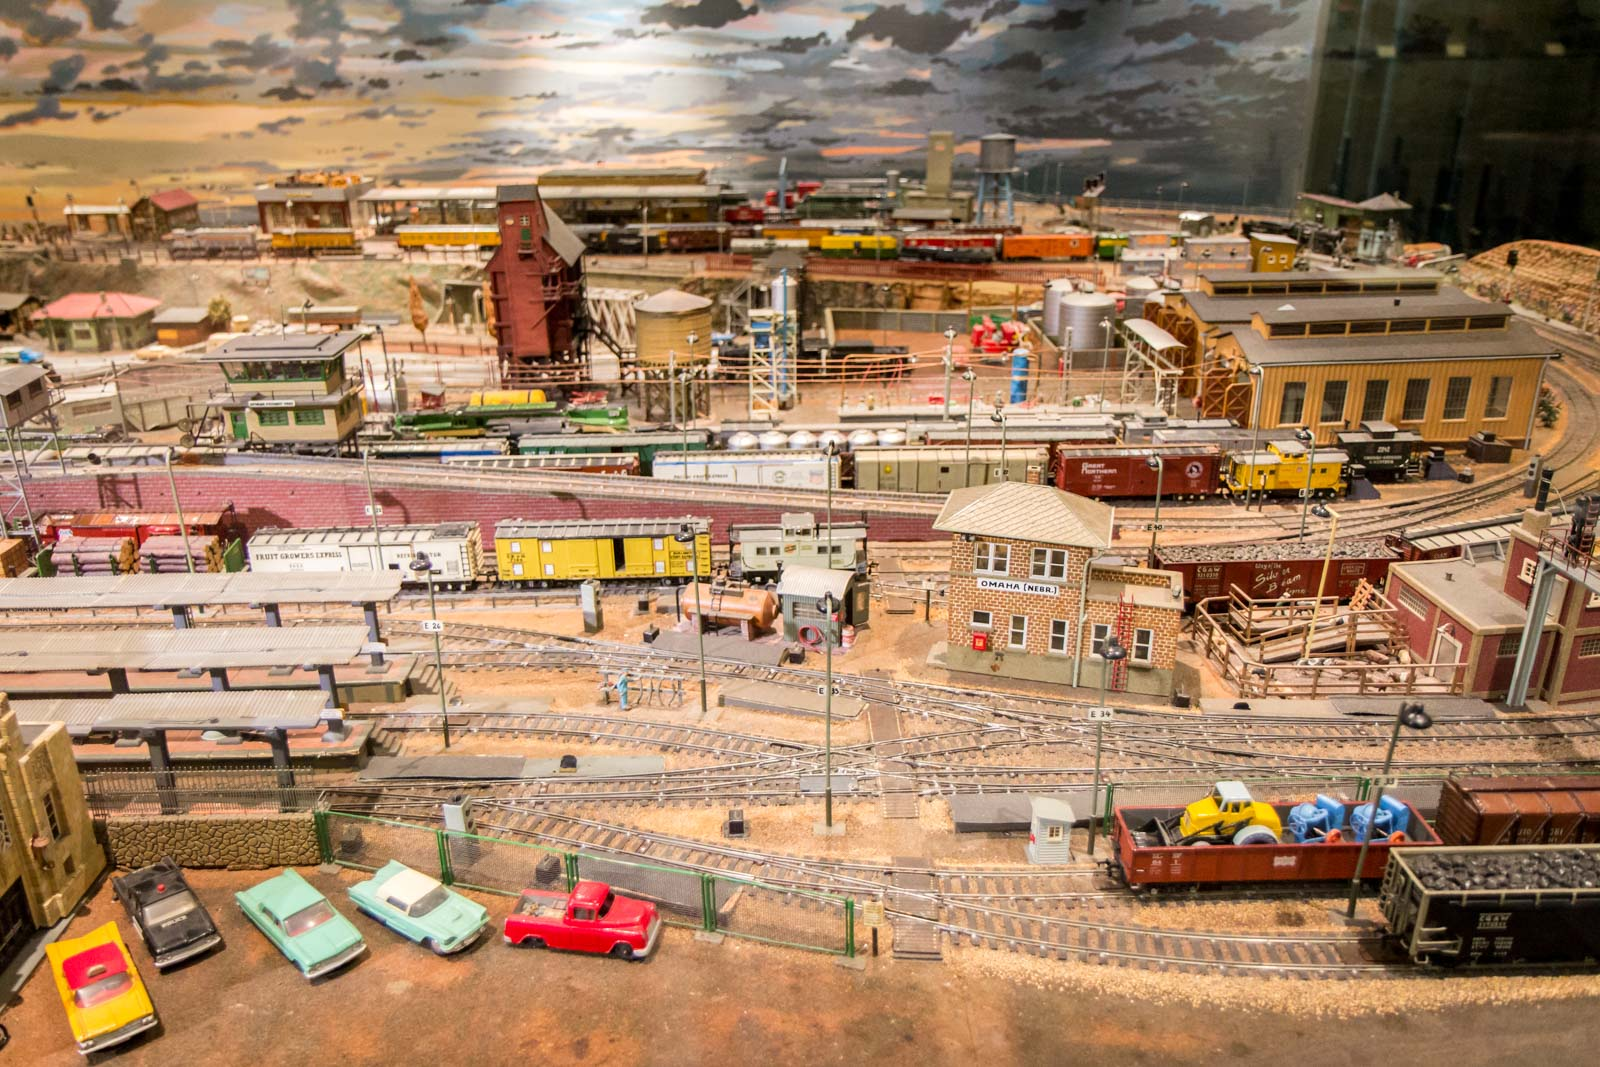 Nuremberg Toy Museum, Germany